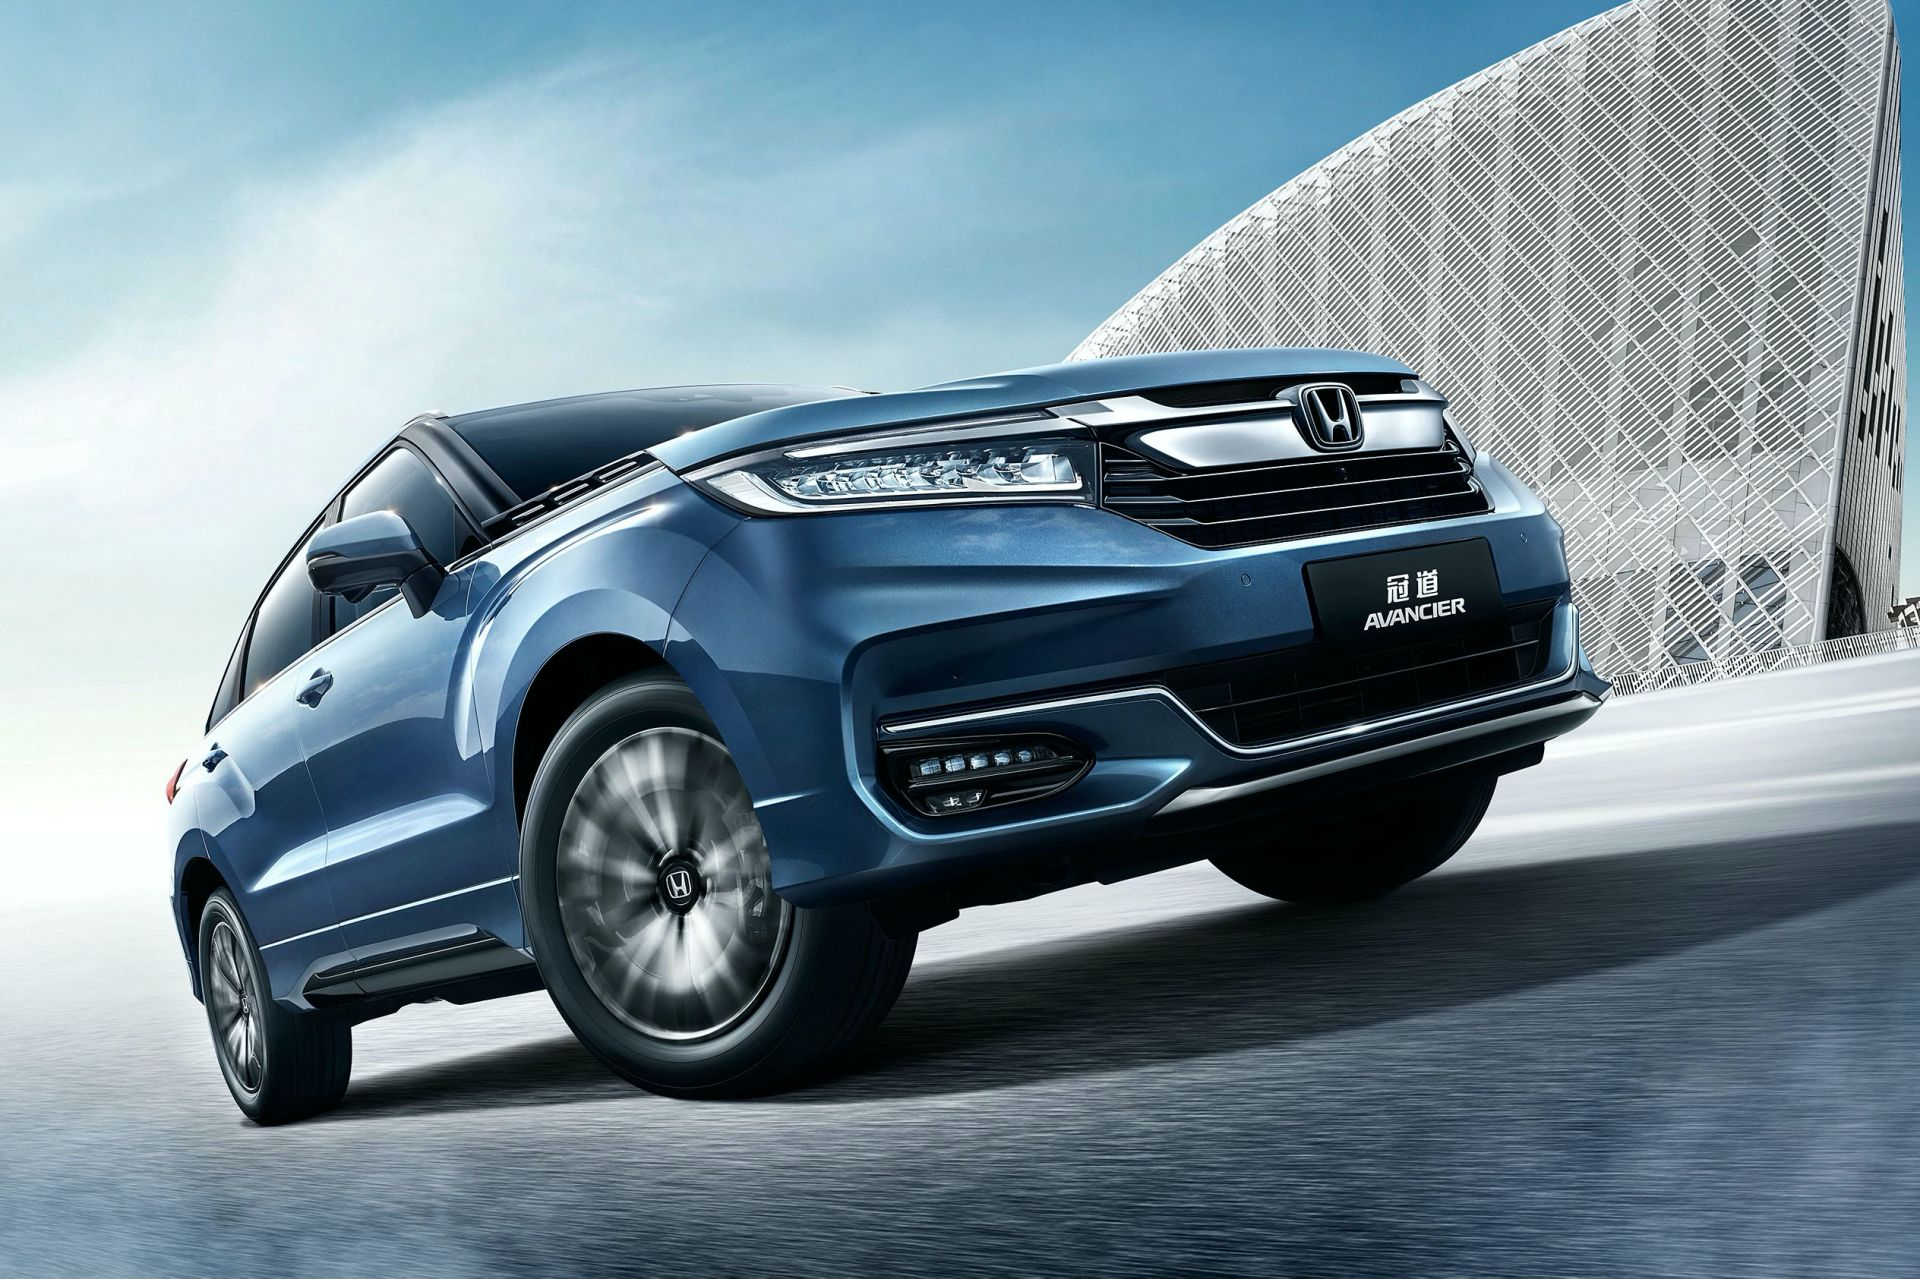 Honda-Avancier-facelift-2020-3